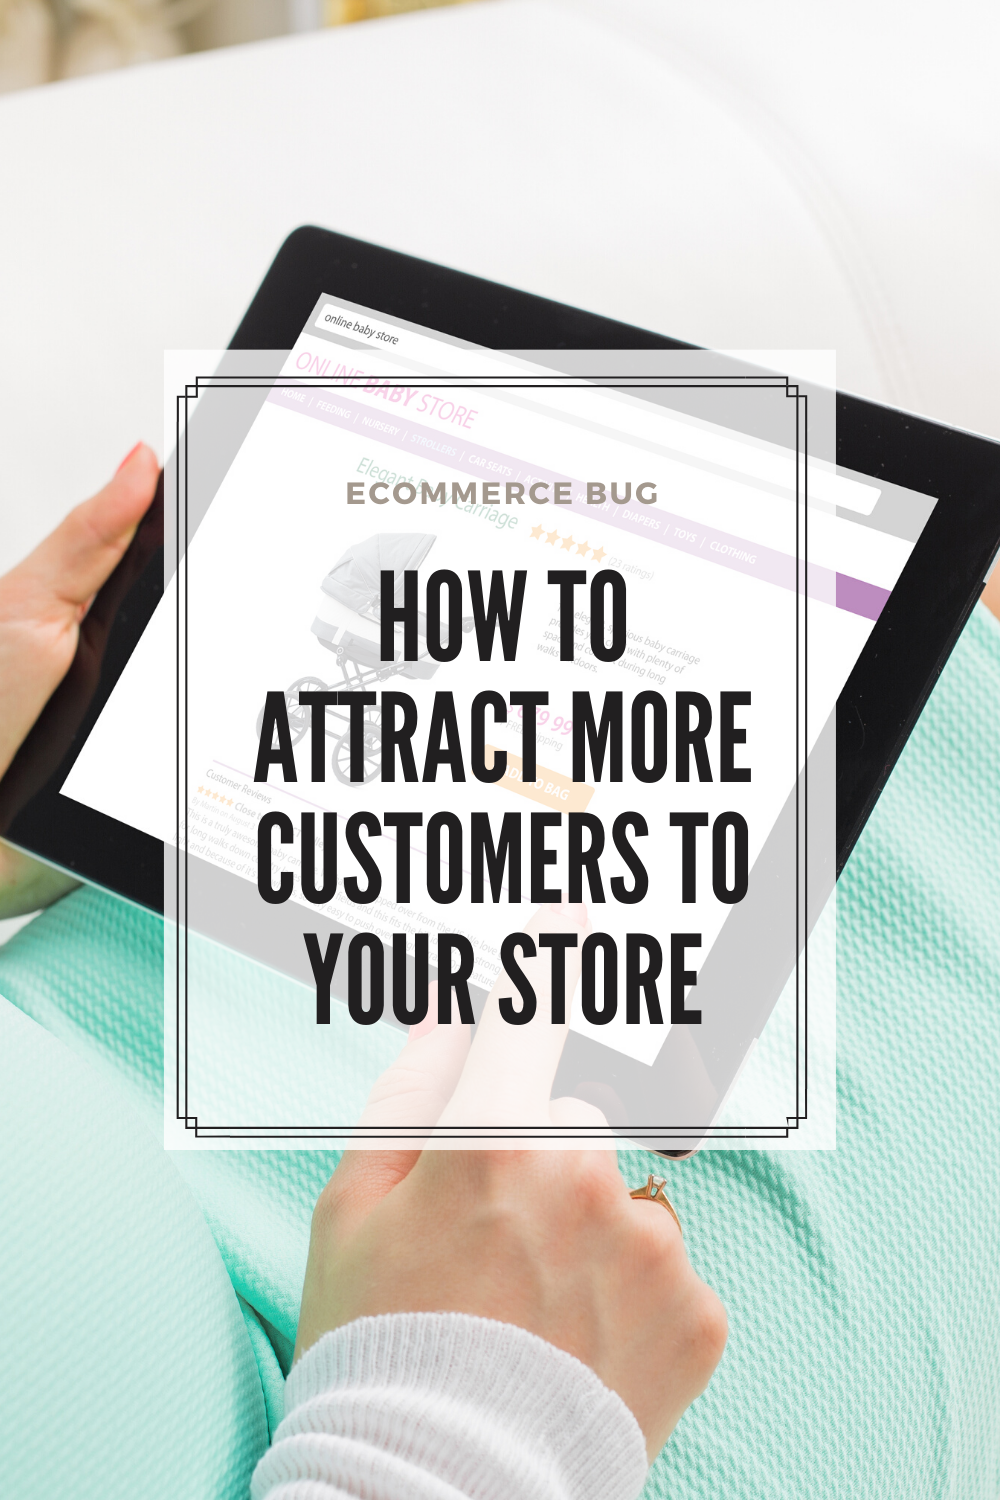 How To Attract More Customers To Your Store In 2020 How To Attract Customers Small Business Resources Ecommerce Startup